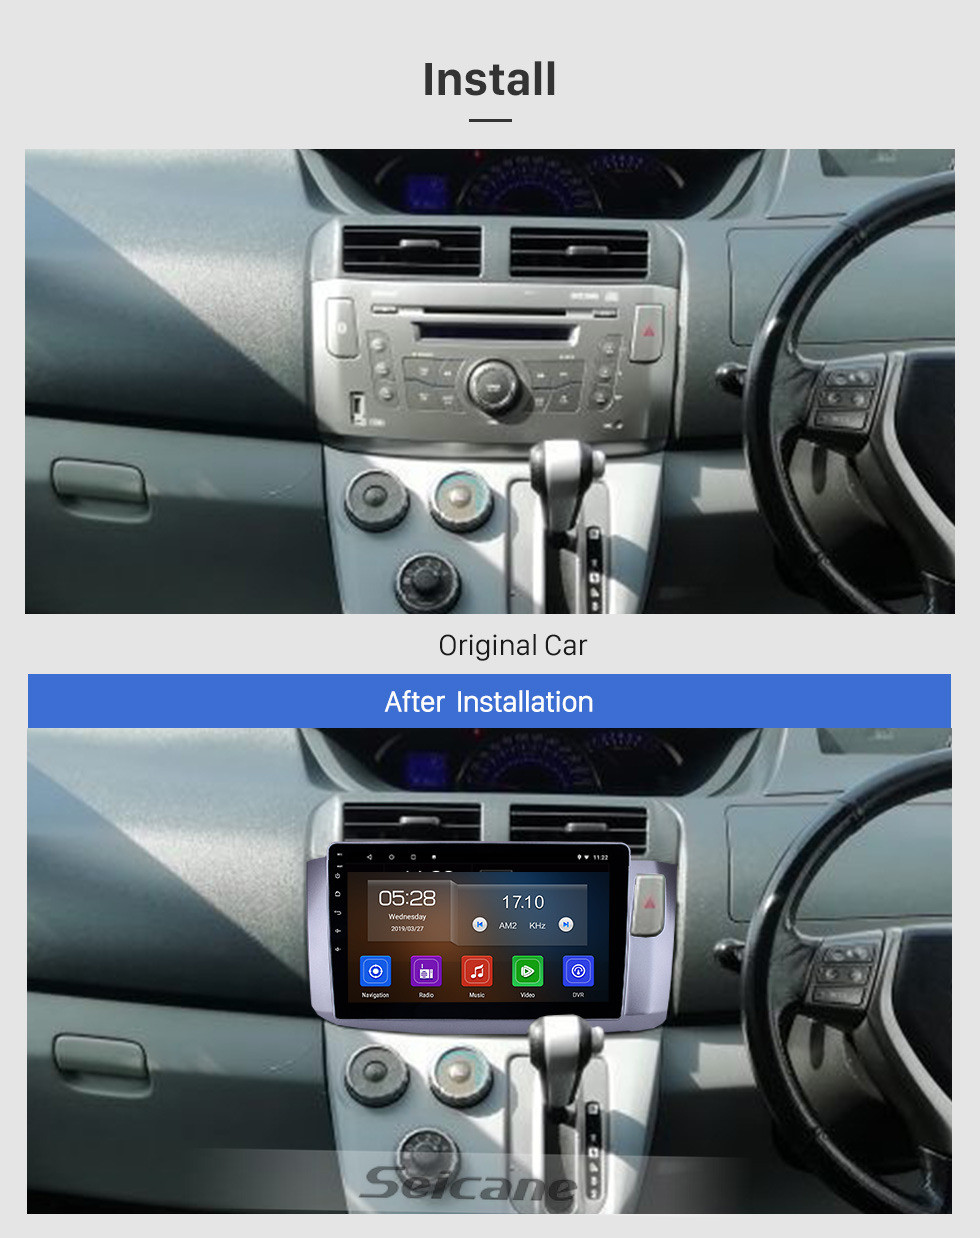 Seicane 10.1 inch Android 10.0 Radio for 2010 Perodua Alza Bluetooth HD Touchscreen GPS Navigation WIFI Carplay USB support TPMS DAB+ OBD2 Digital TV